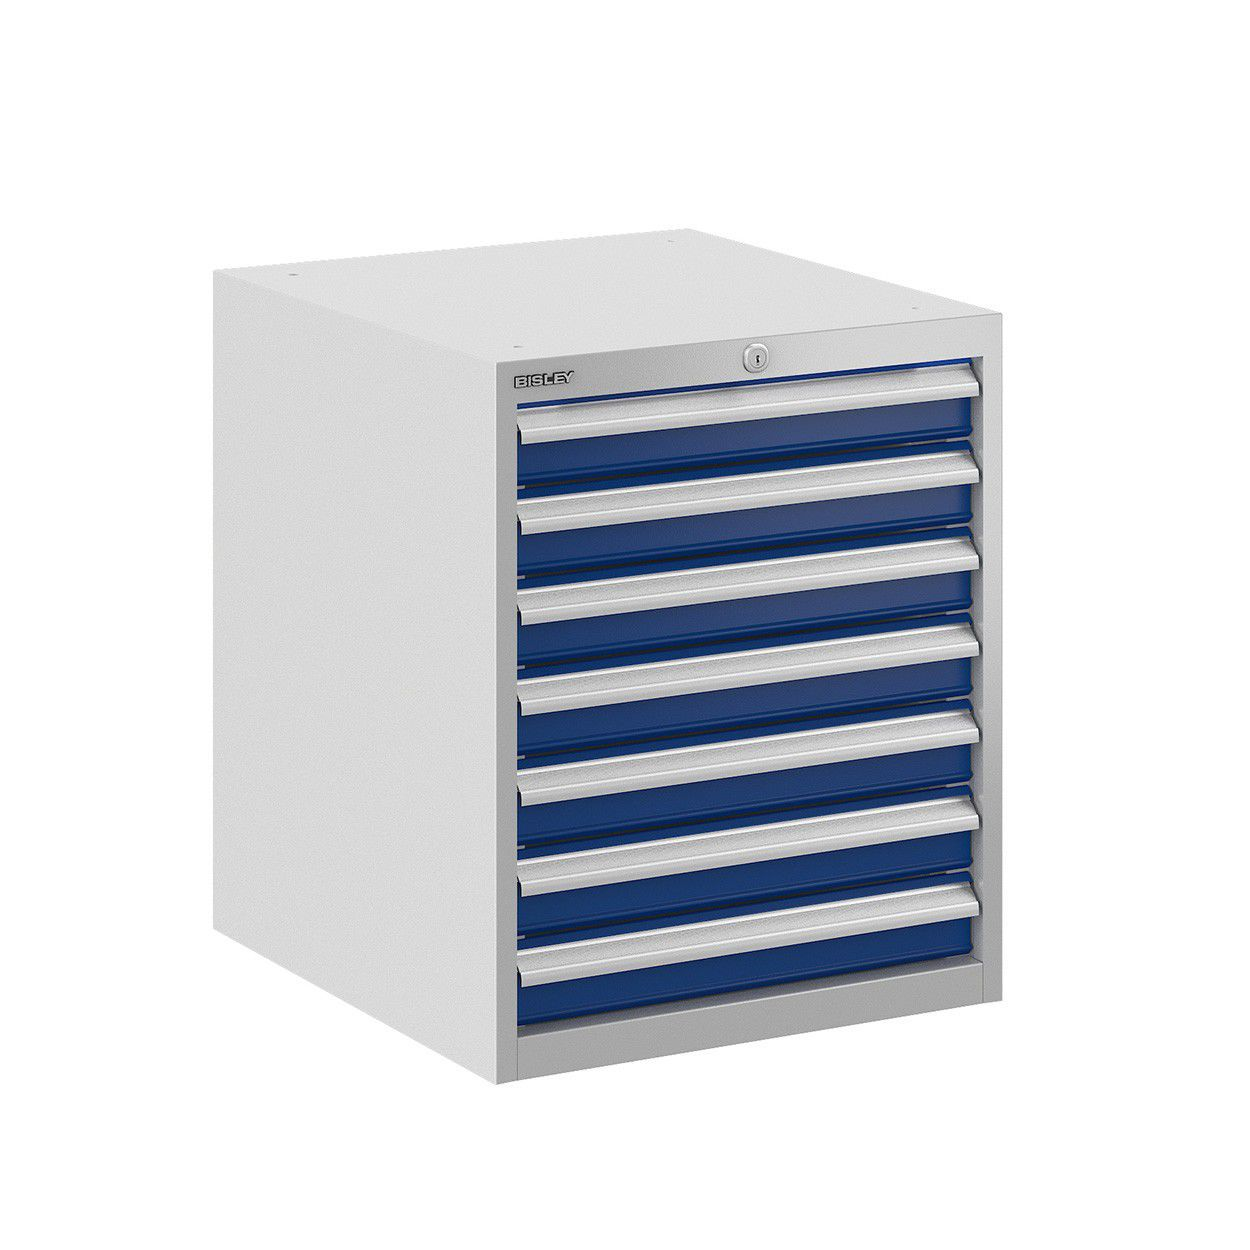 Super Low Filing Cabinet Steel With Drawers Contemporary Uwap Interior Chair Design Uwaporg